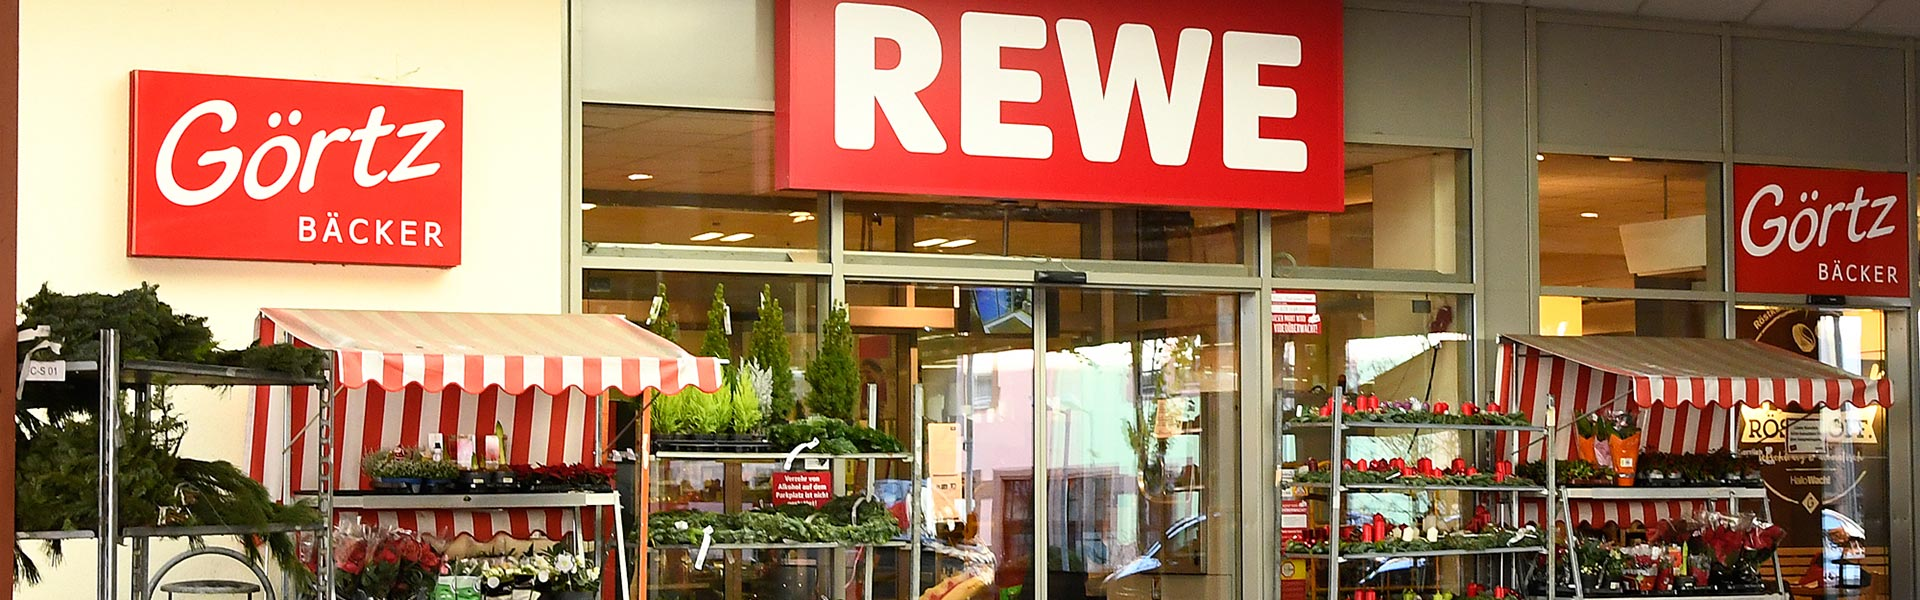 REWE in Worms